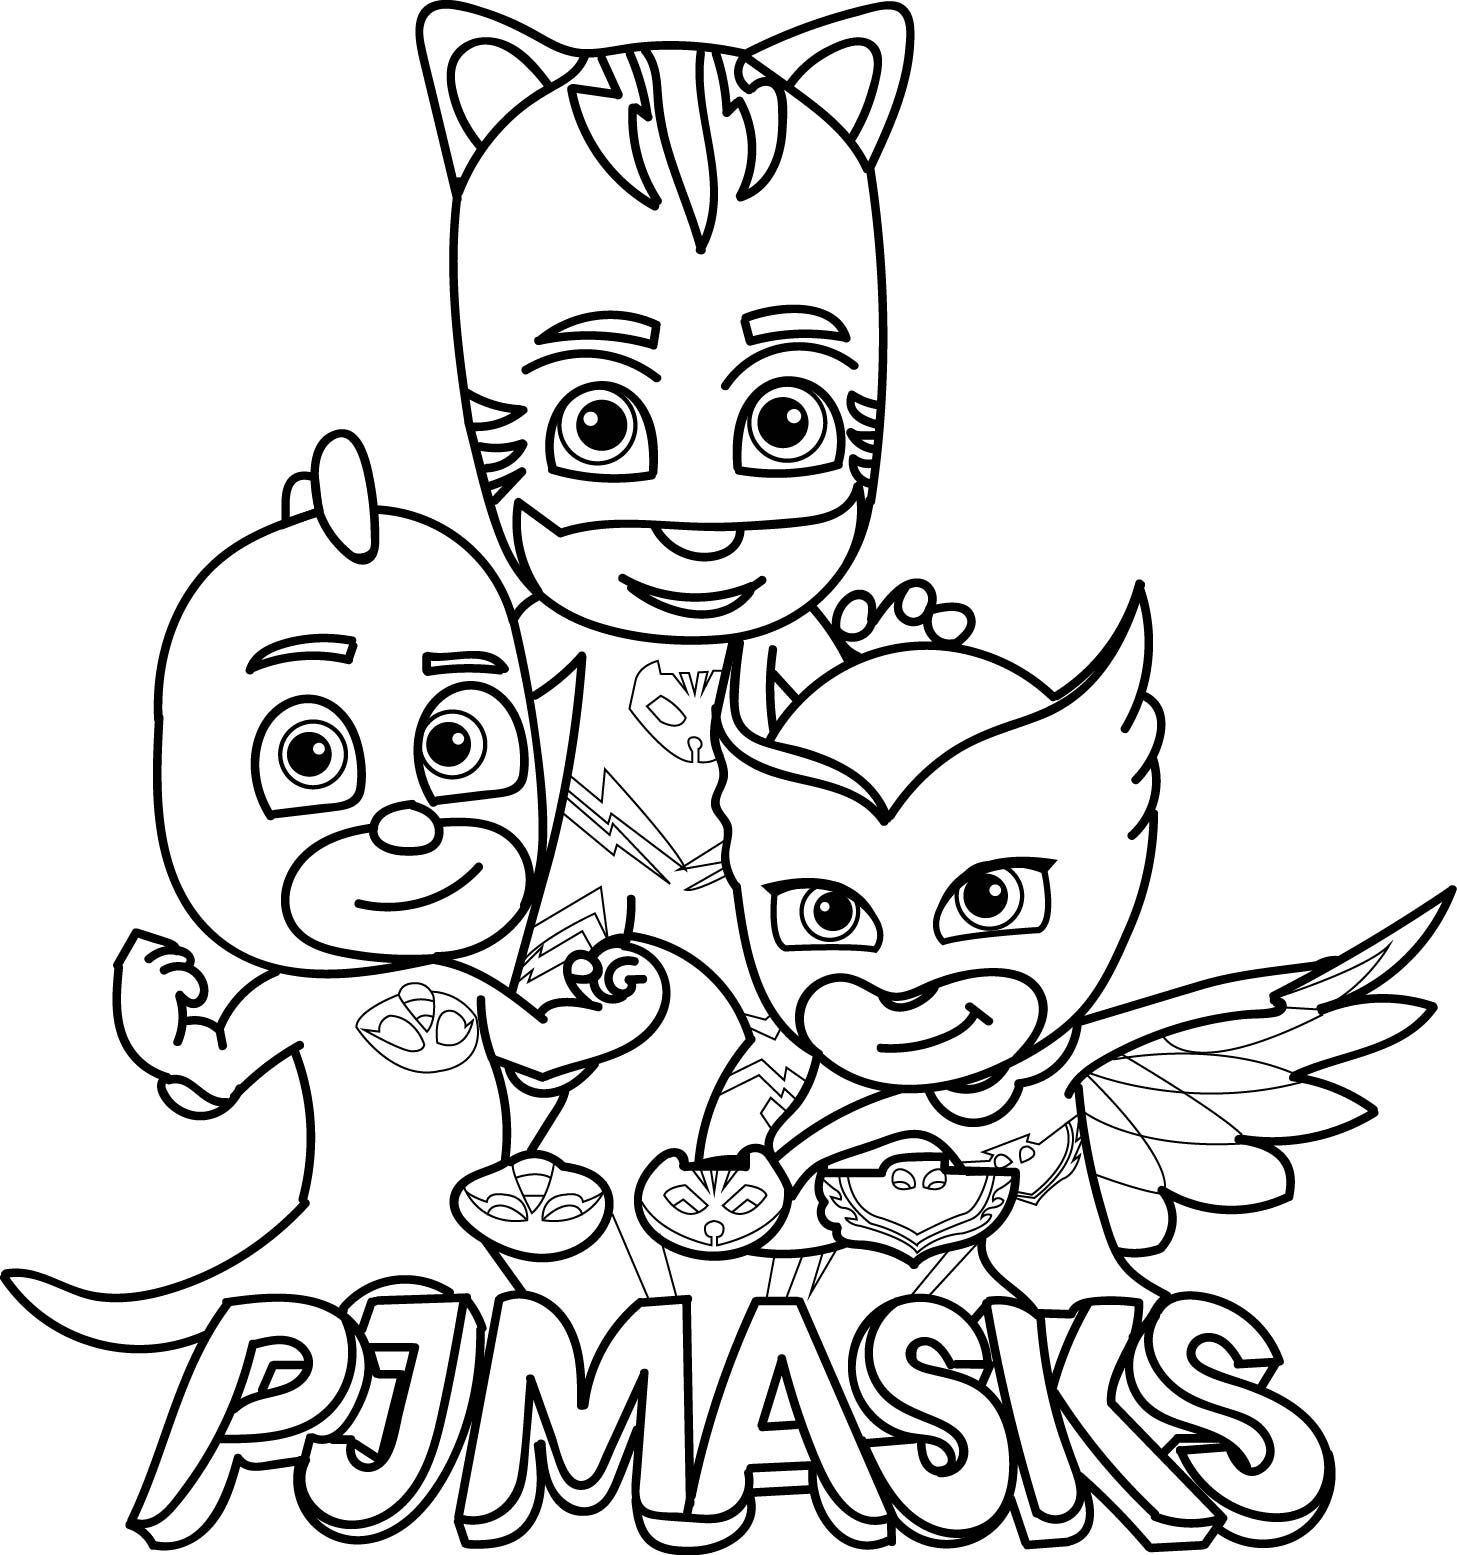 photograph about Pj Masks Printable Coloring Pages titled PJ Masks Coloring Web pages PJ Masks Pj masks coloring internet pages